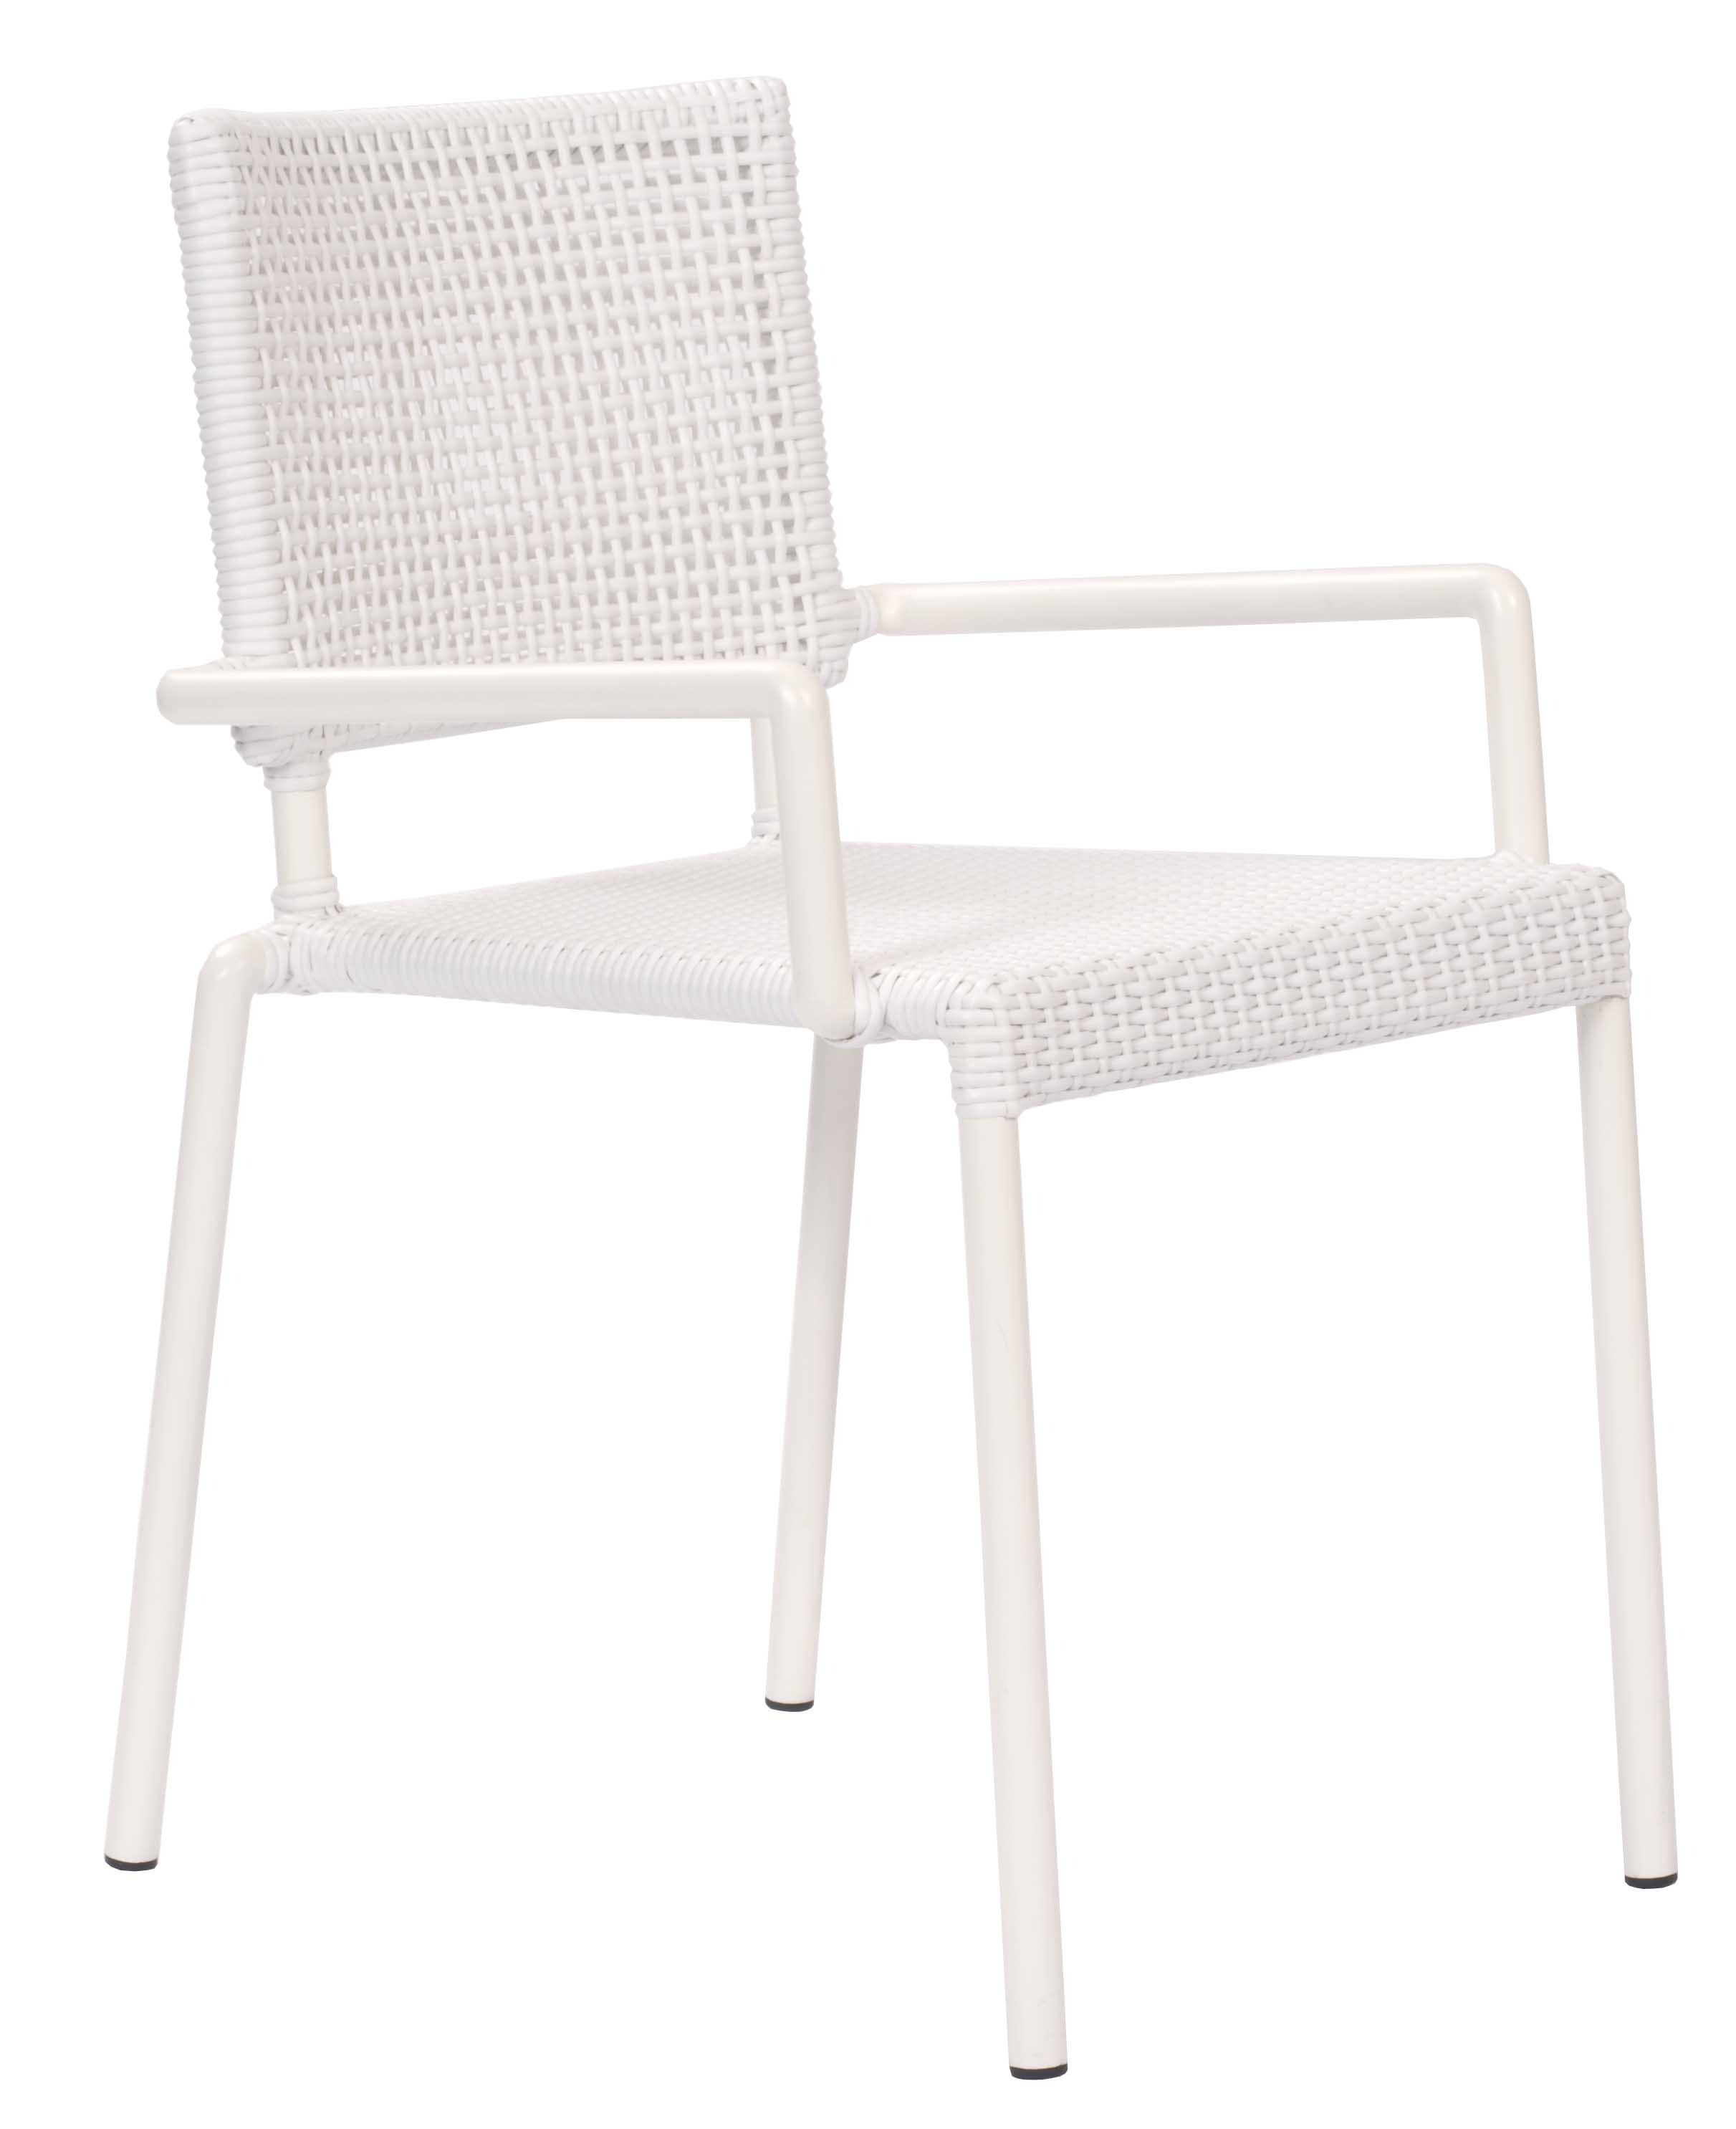 Lido outdoor dining chair with arms white pr home for White dining chairs with arms